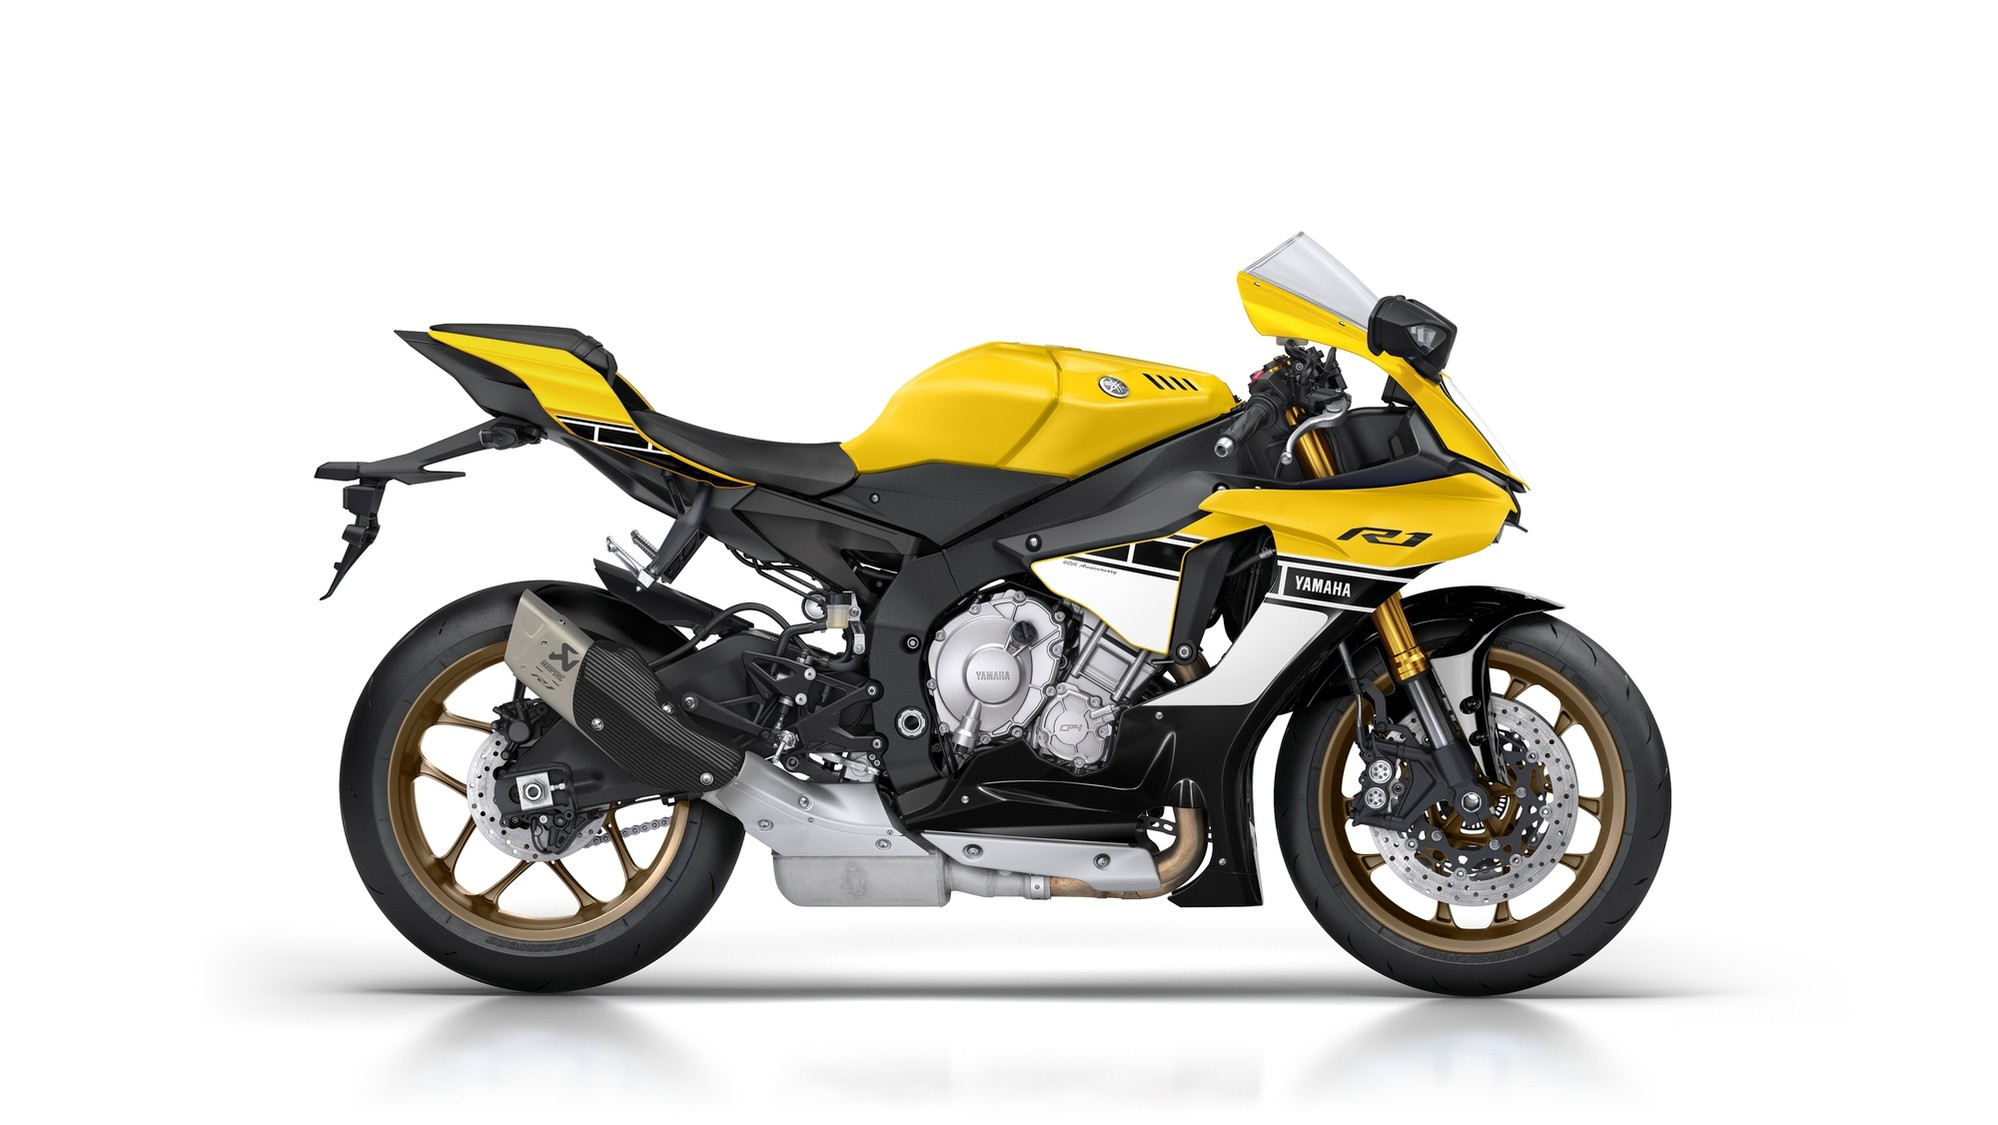 R1 Wiring Diagram 2014 Yzf Wire 2003 Fuel Injection Yamaha 1999 60th Anniversary Edition Shows A Timeless Yellow Black On